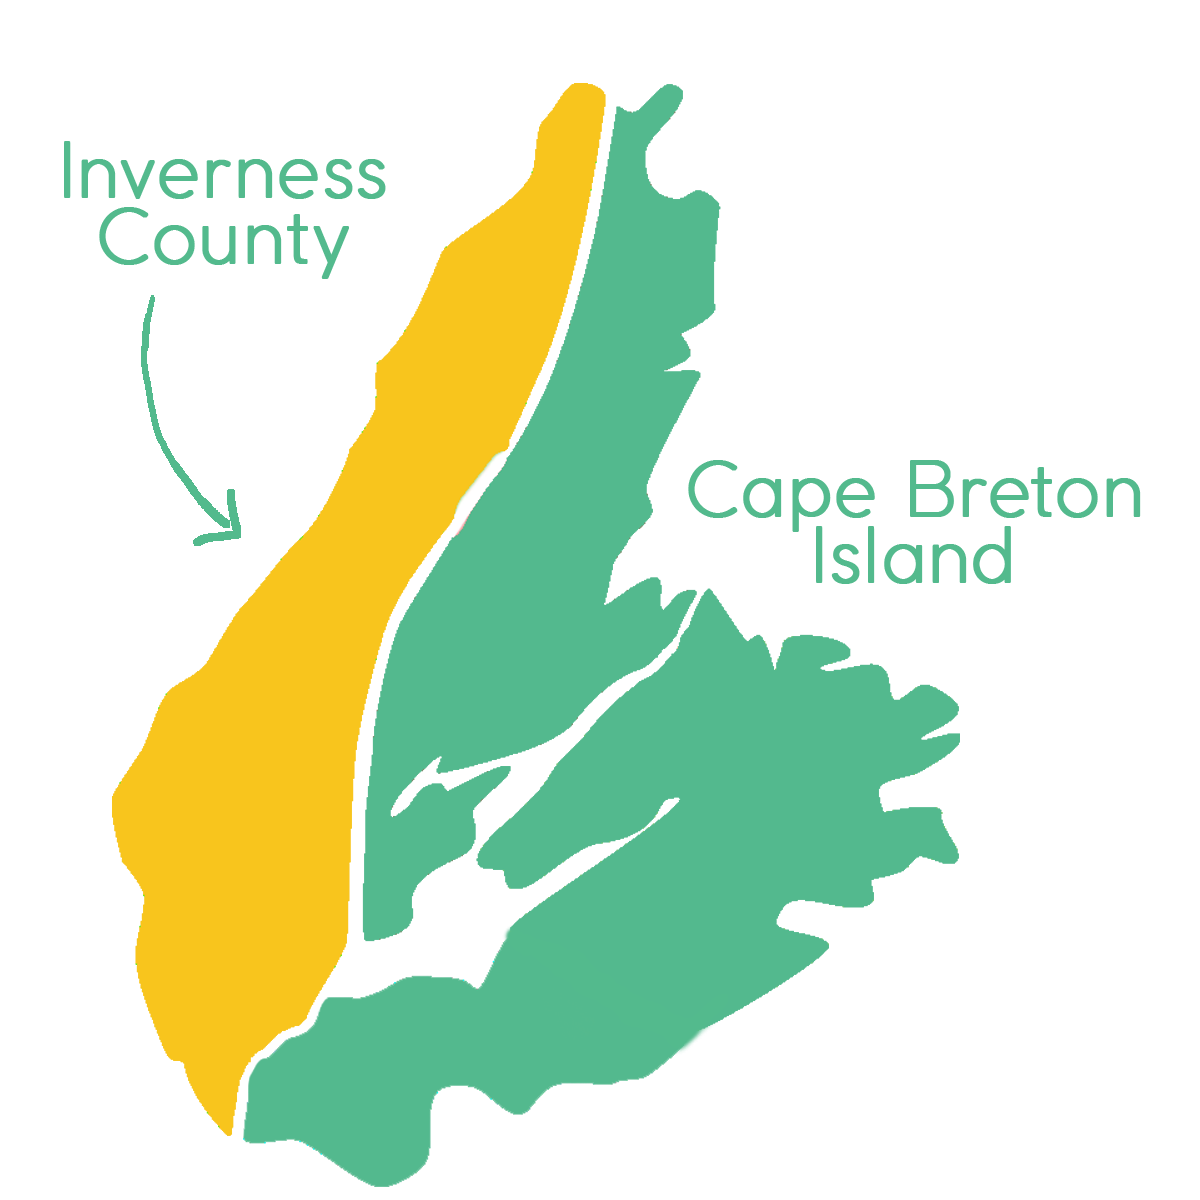 Inverness County.png